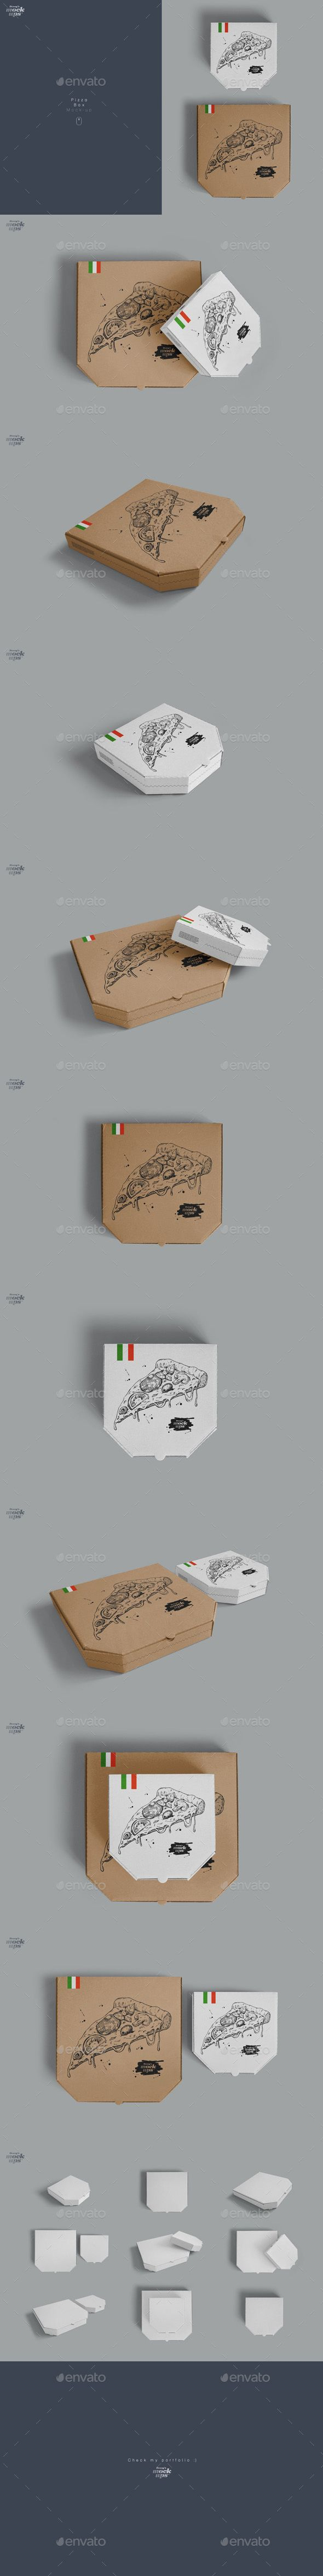 Pizza Box Mockup Design Template - Food and Drink Packaging Mock Up Design Template PSD. Download here: https://graphicriver.net/item/pizza-box-mockup/17032726?s_rank=21&ref=yinkira